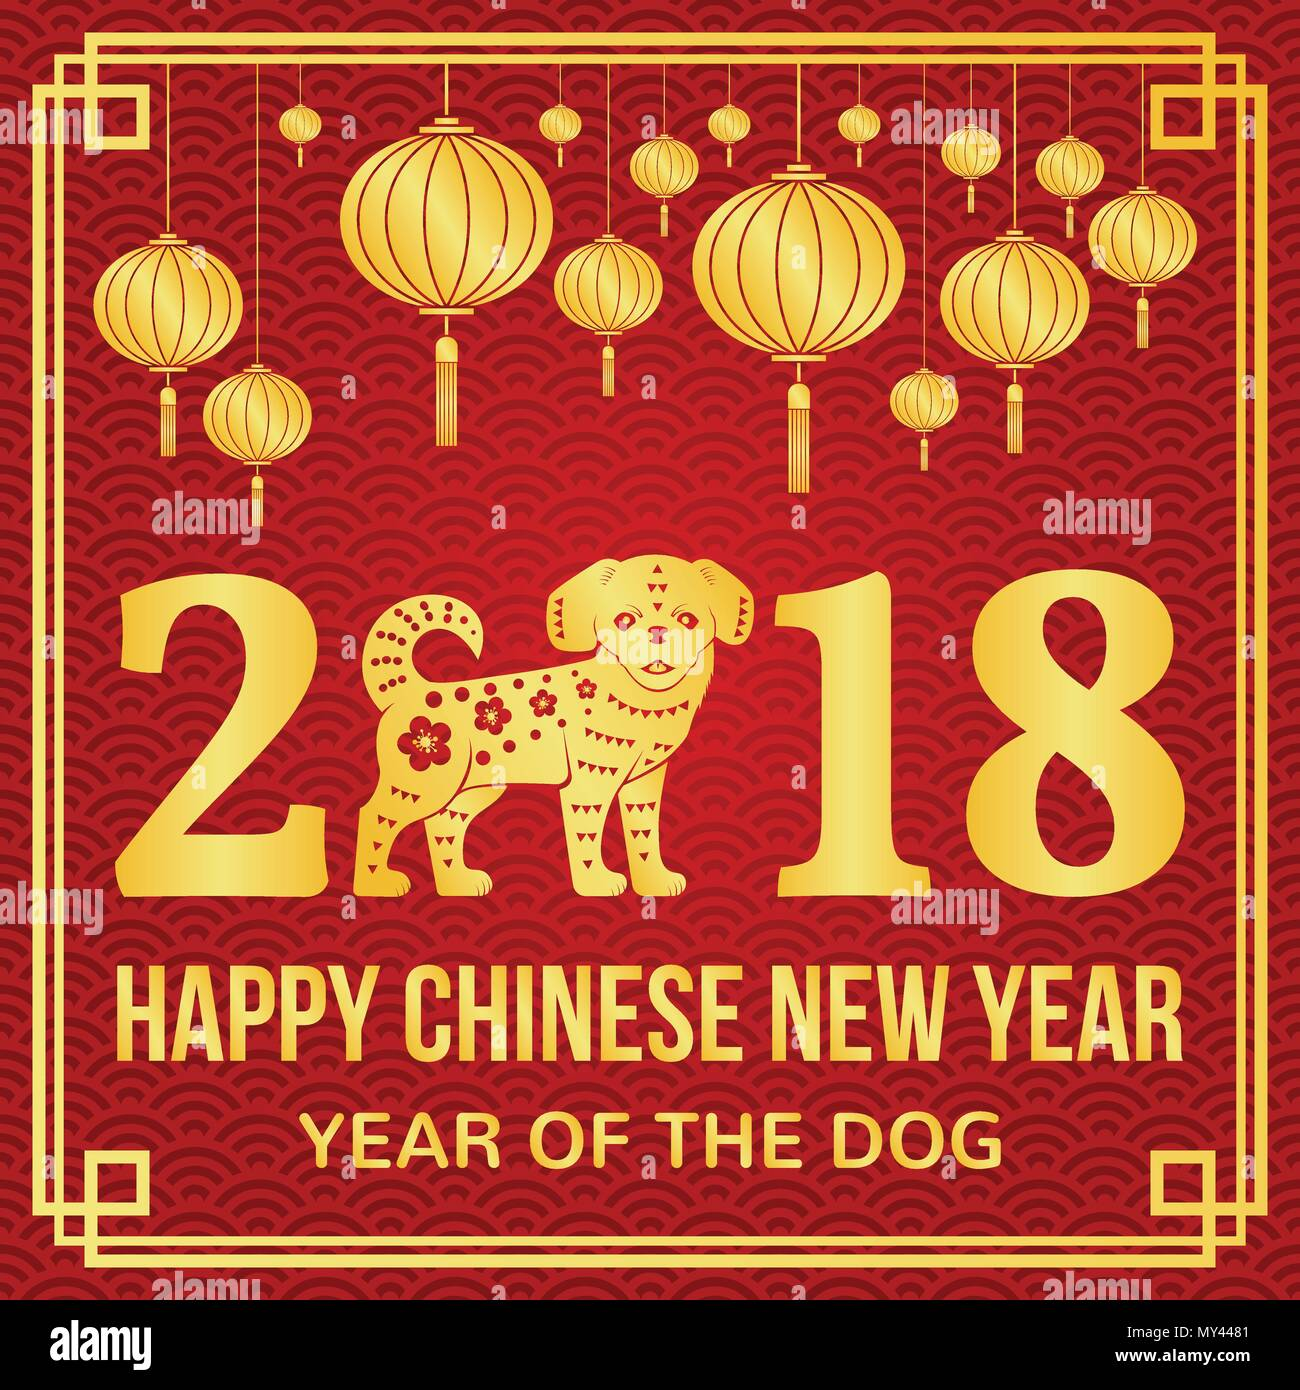 Happy Chinese New Year 2018 Typography With Gold Dog And Chinese